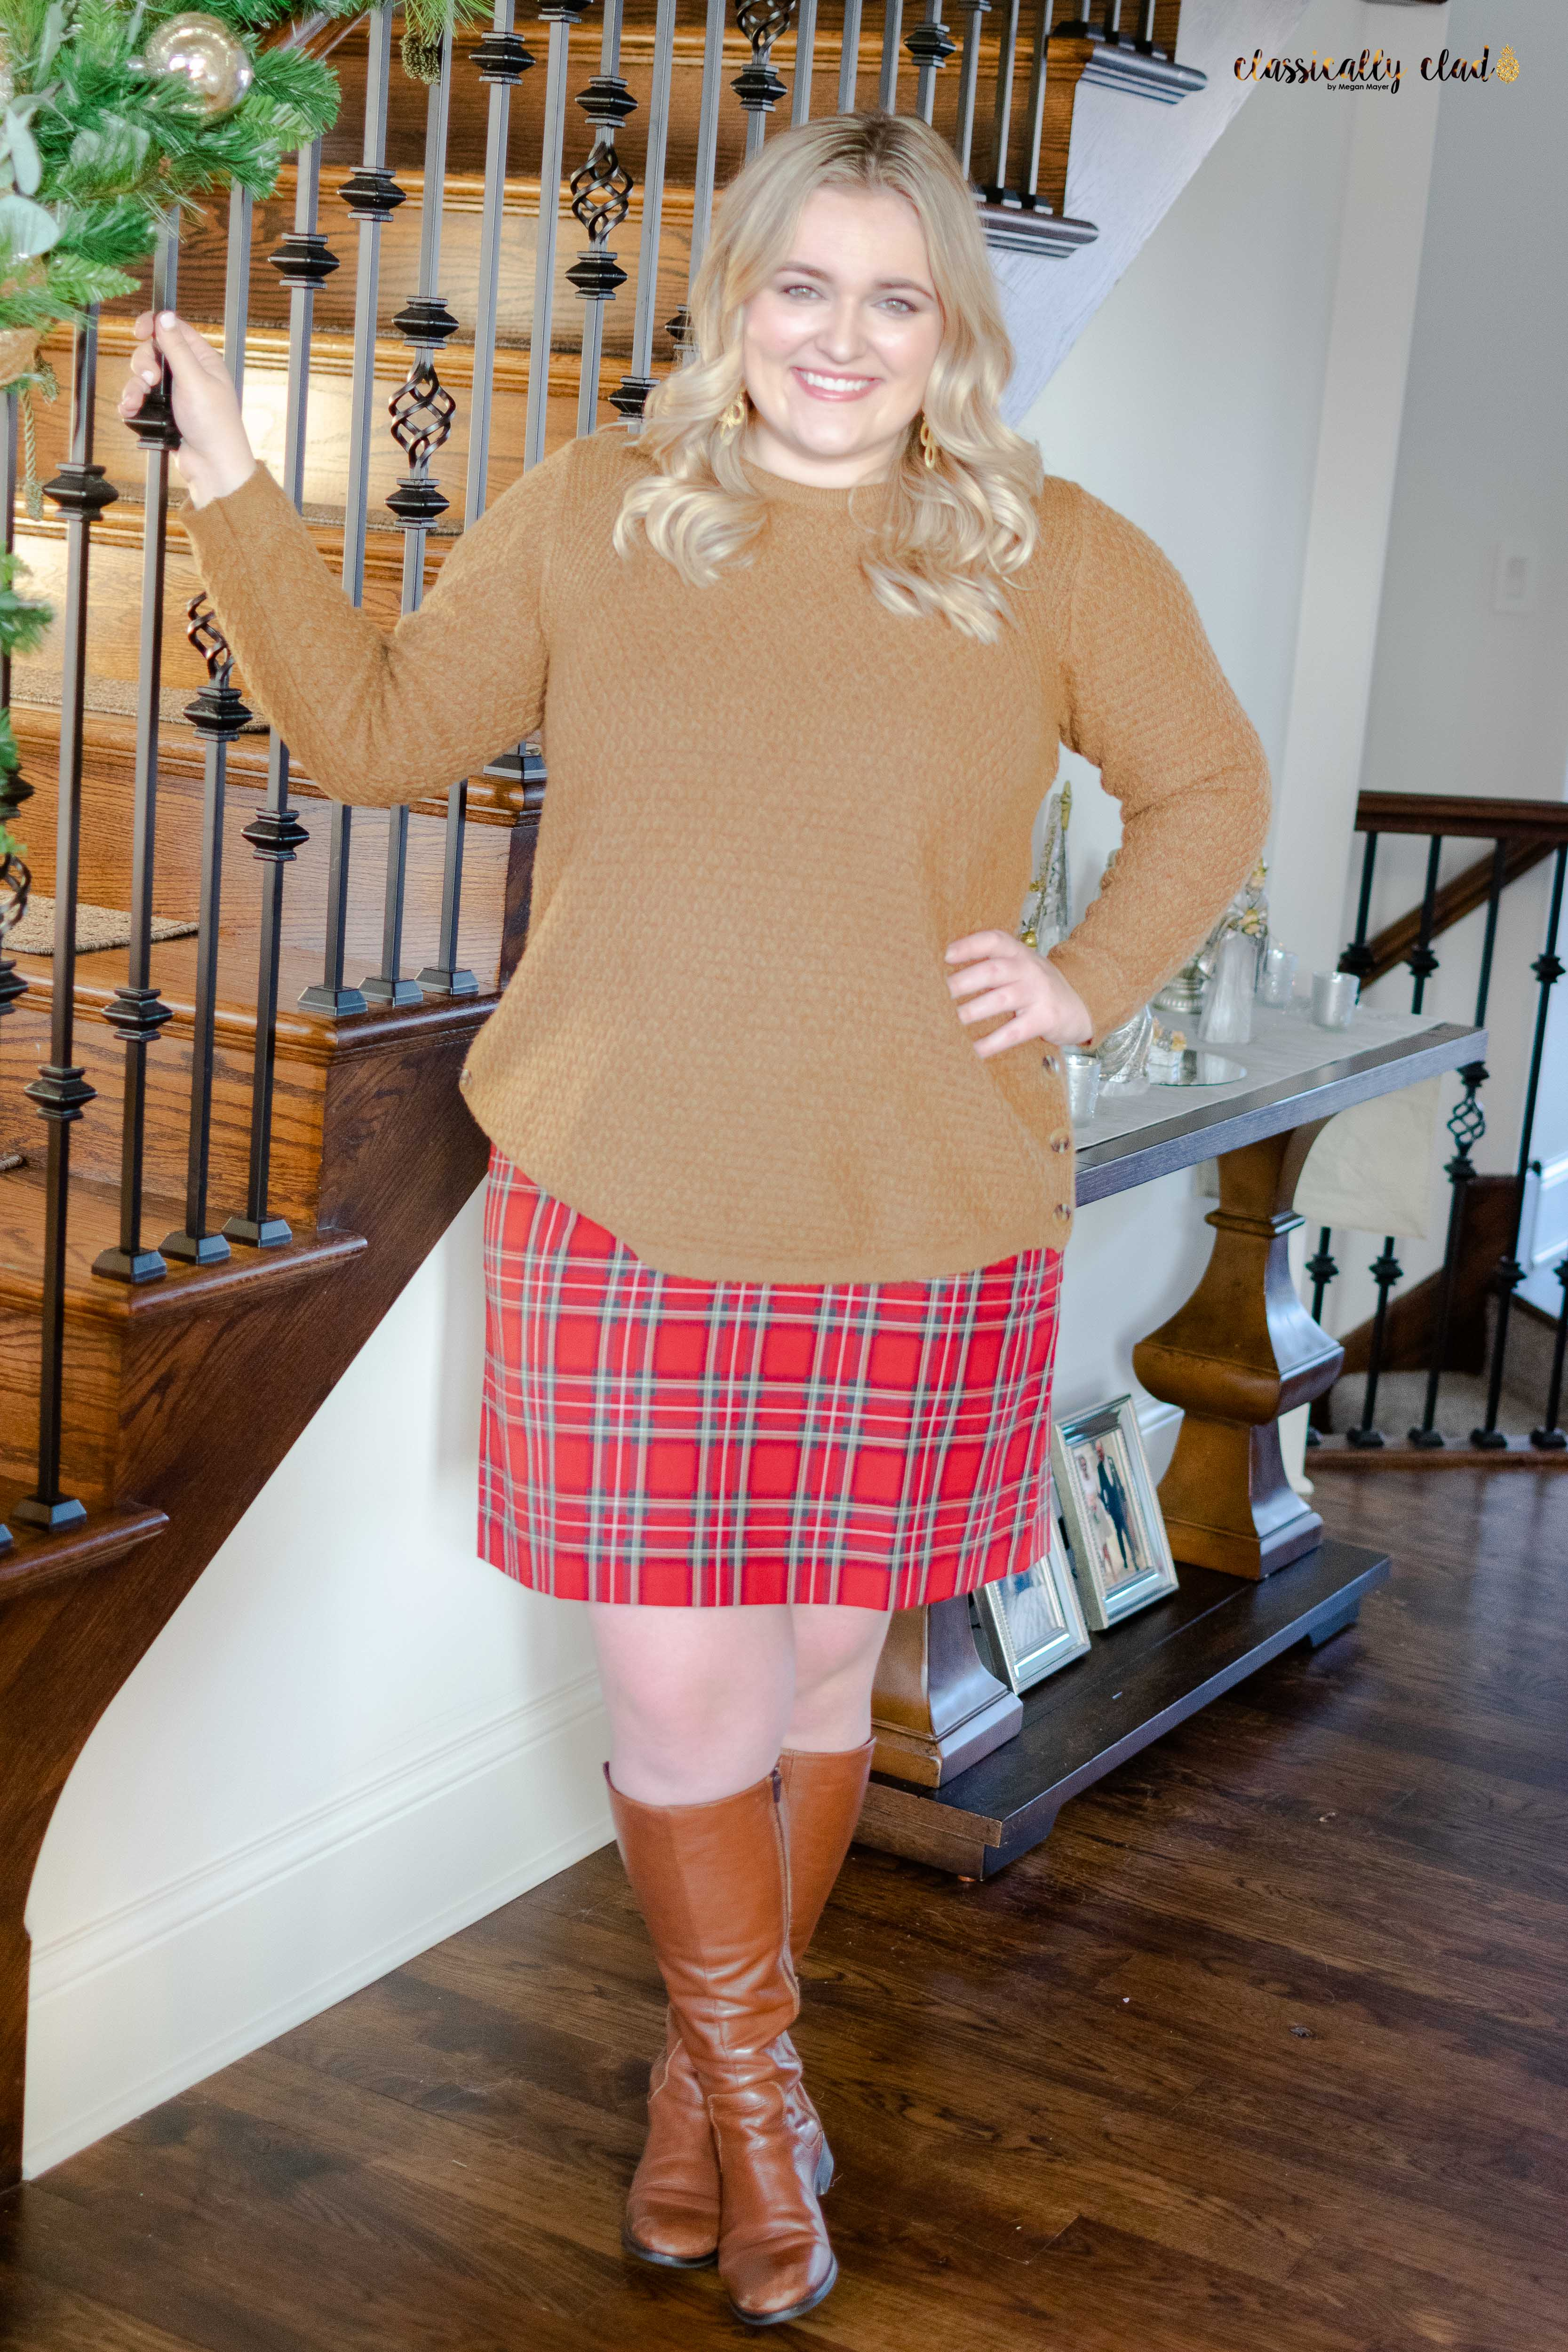 How To Style A Plaid Skirt - With An Oversized Sweater